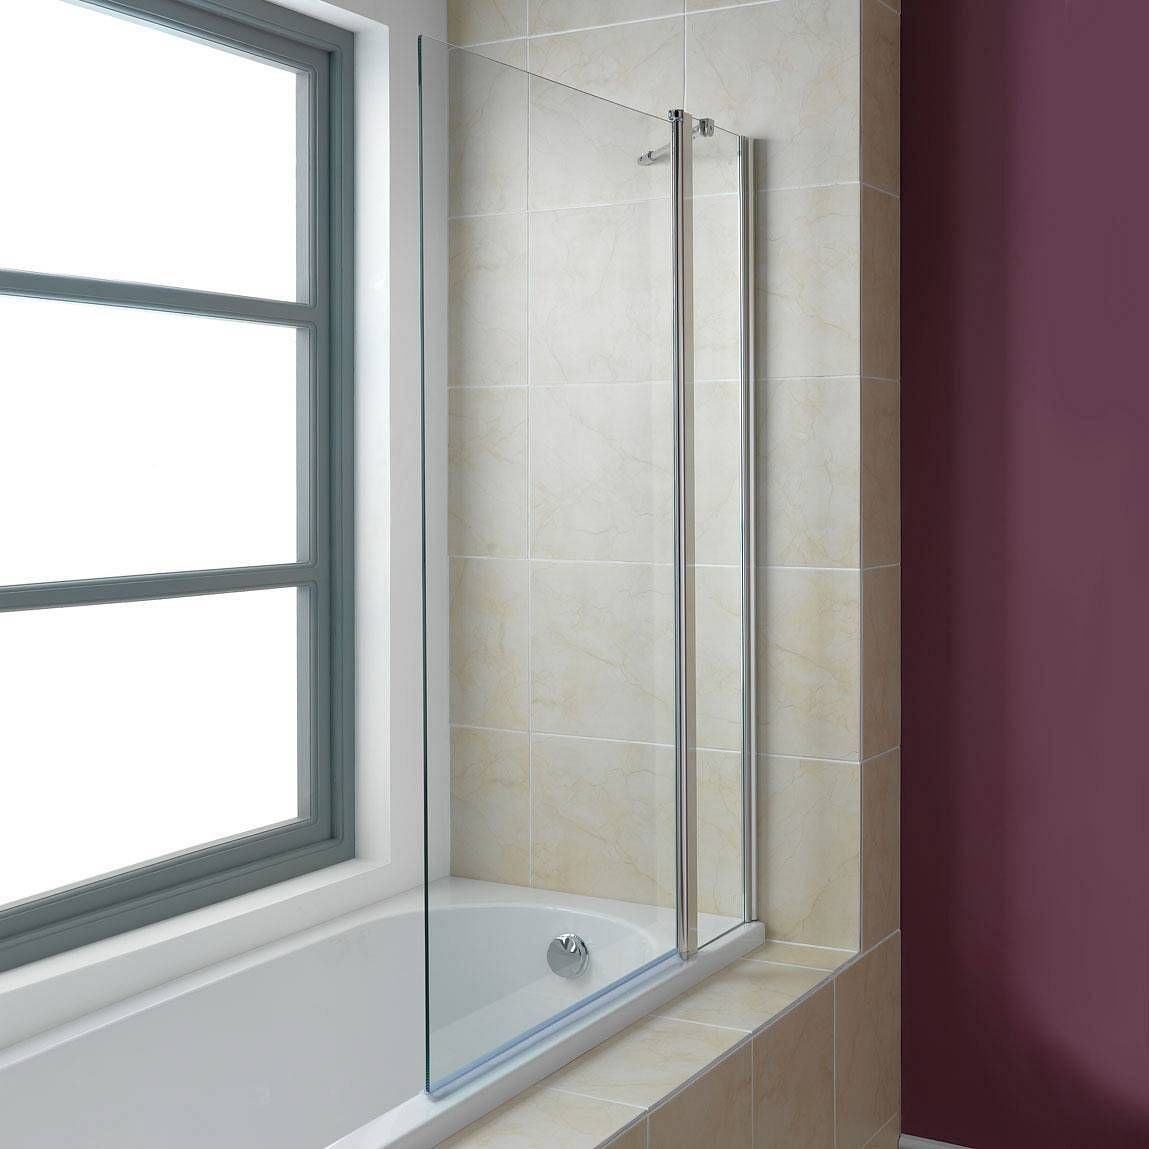 product specification weight 15 kg width 990 mm height 1400 mm hinged double bath screen victoria plumb inc delivery